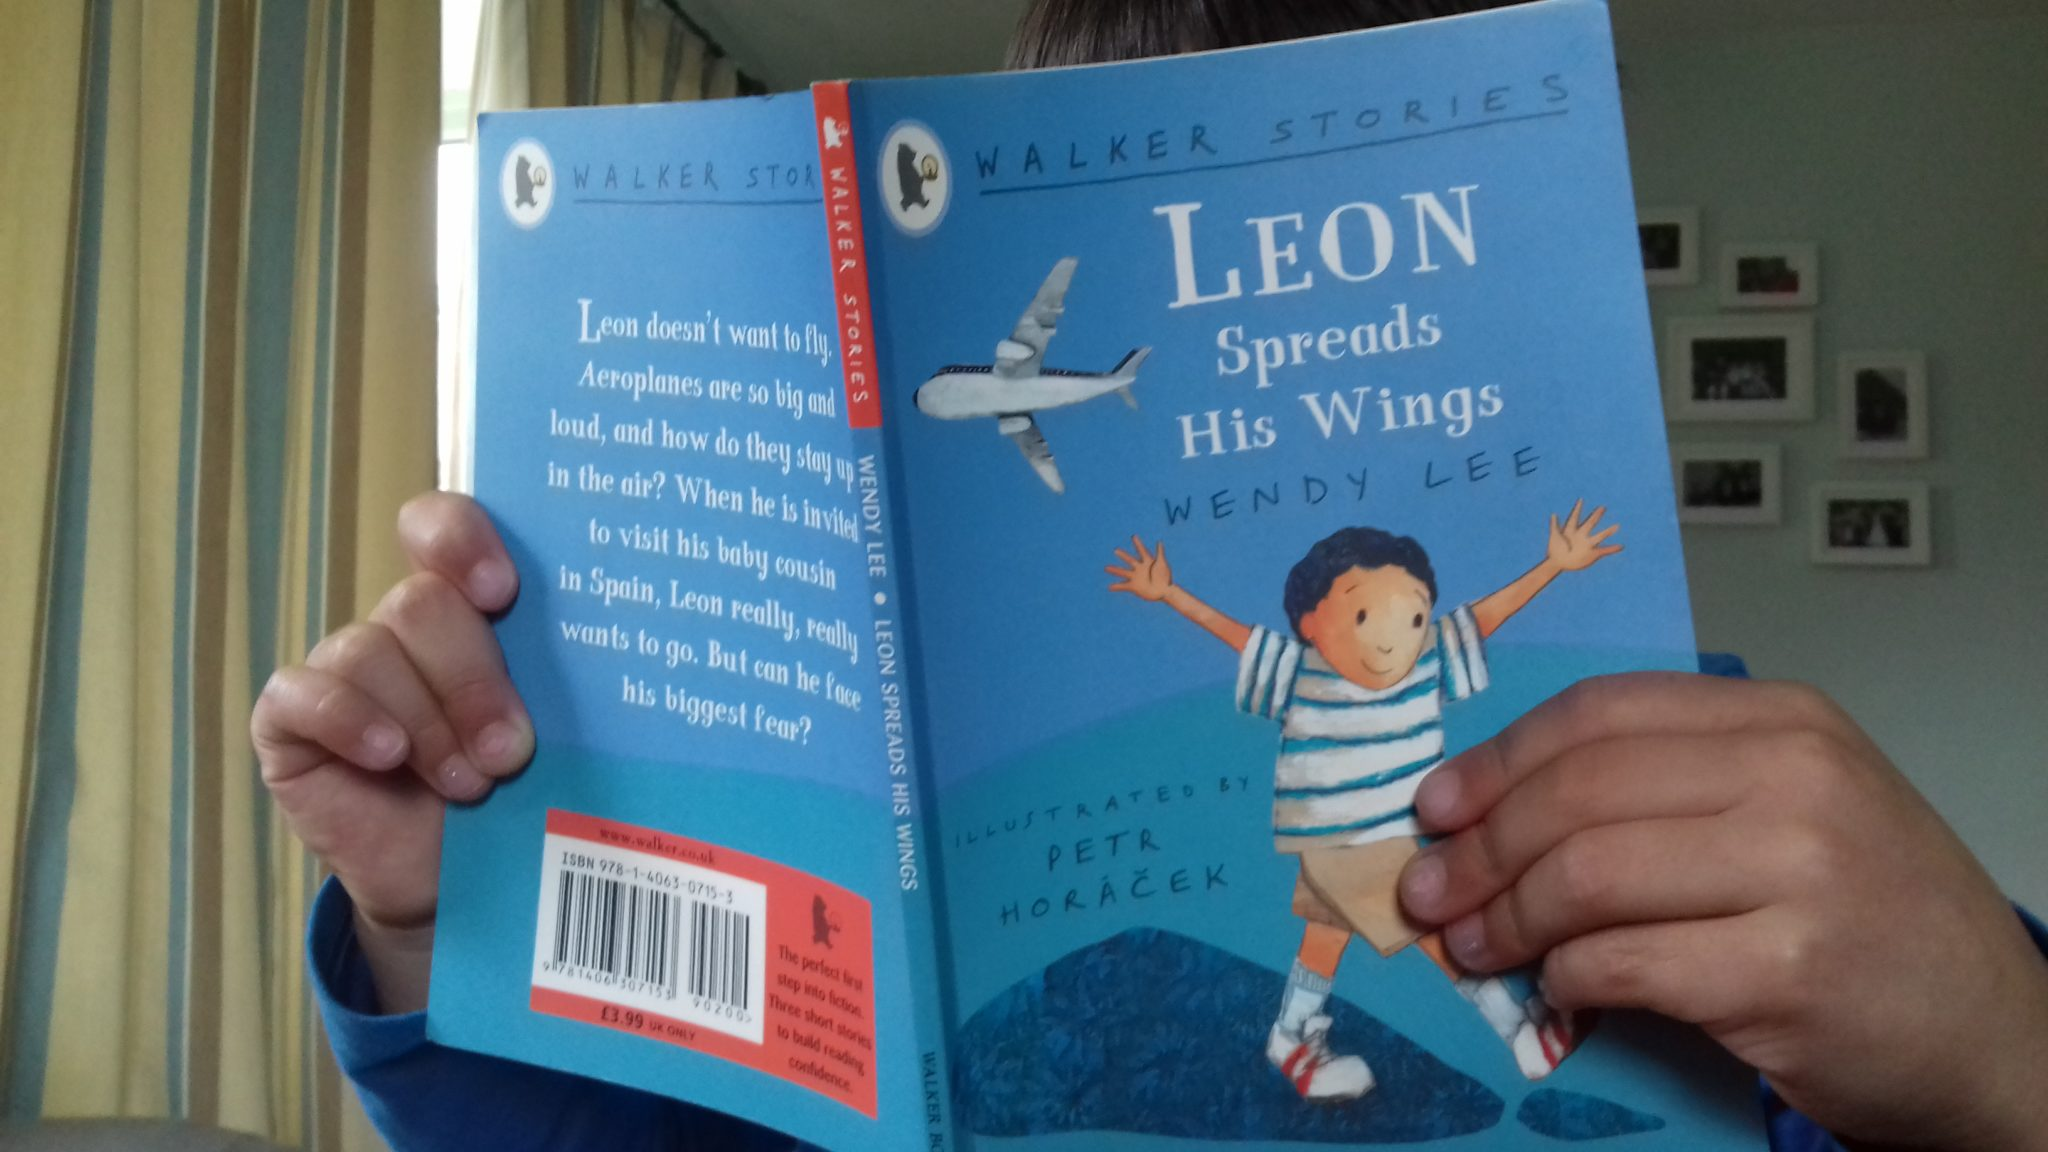 Leon spreads his wings - Wendy Lee. The best books for kids about race that they need on their bookshelves. in classrooms and in libraries. These 25+ suggestions have all been enjoyed by our family, and are guaranteed to raise healthy discussions about cultural diversity.